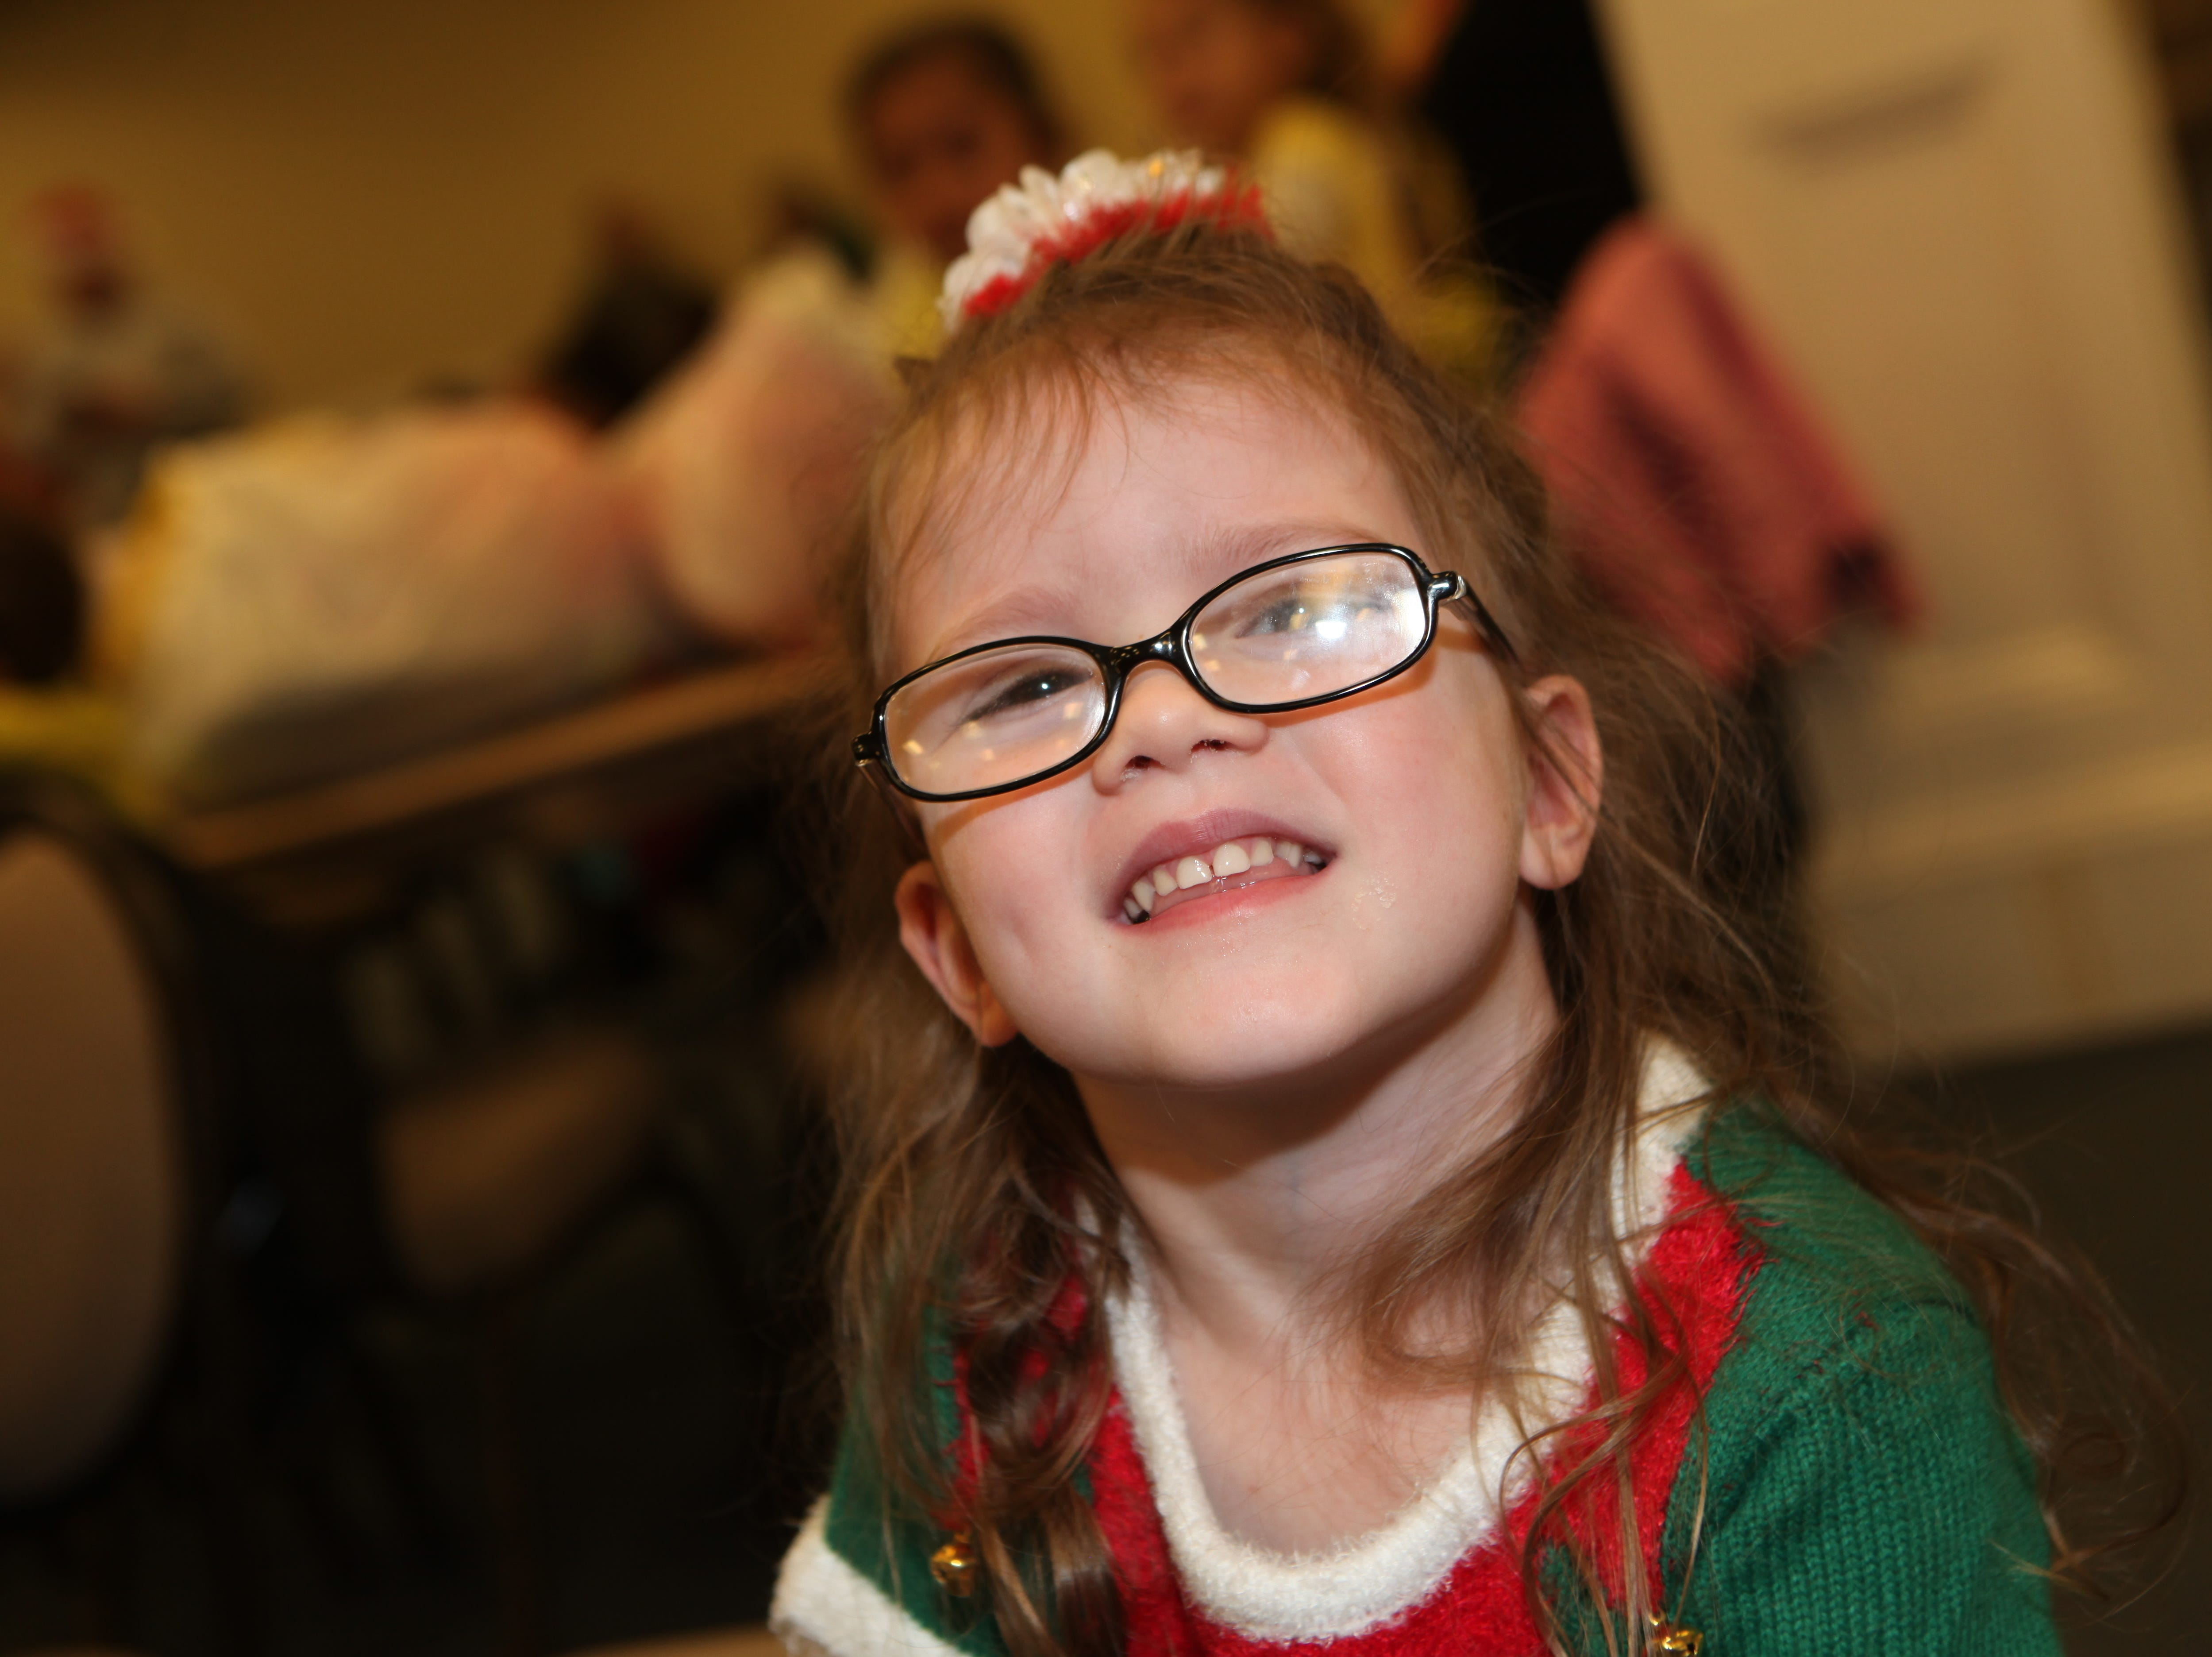 Evalynne smiles during the Clarksville Kiwanis Club's annual Christmas Party giving 144 Head Start children a visit with Santa Claus and a bag full of early Christmas presents, Dec. 4, 2018 in Clarksville, Tenn.